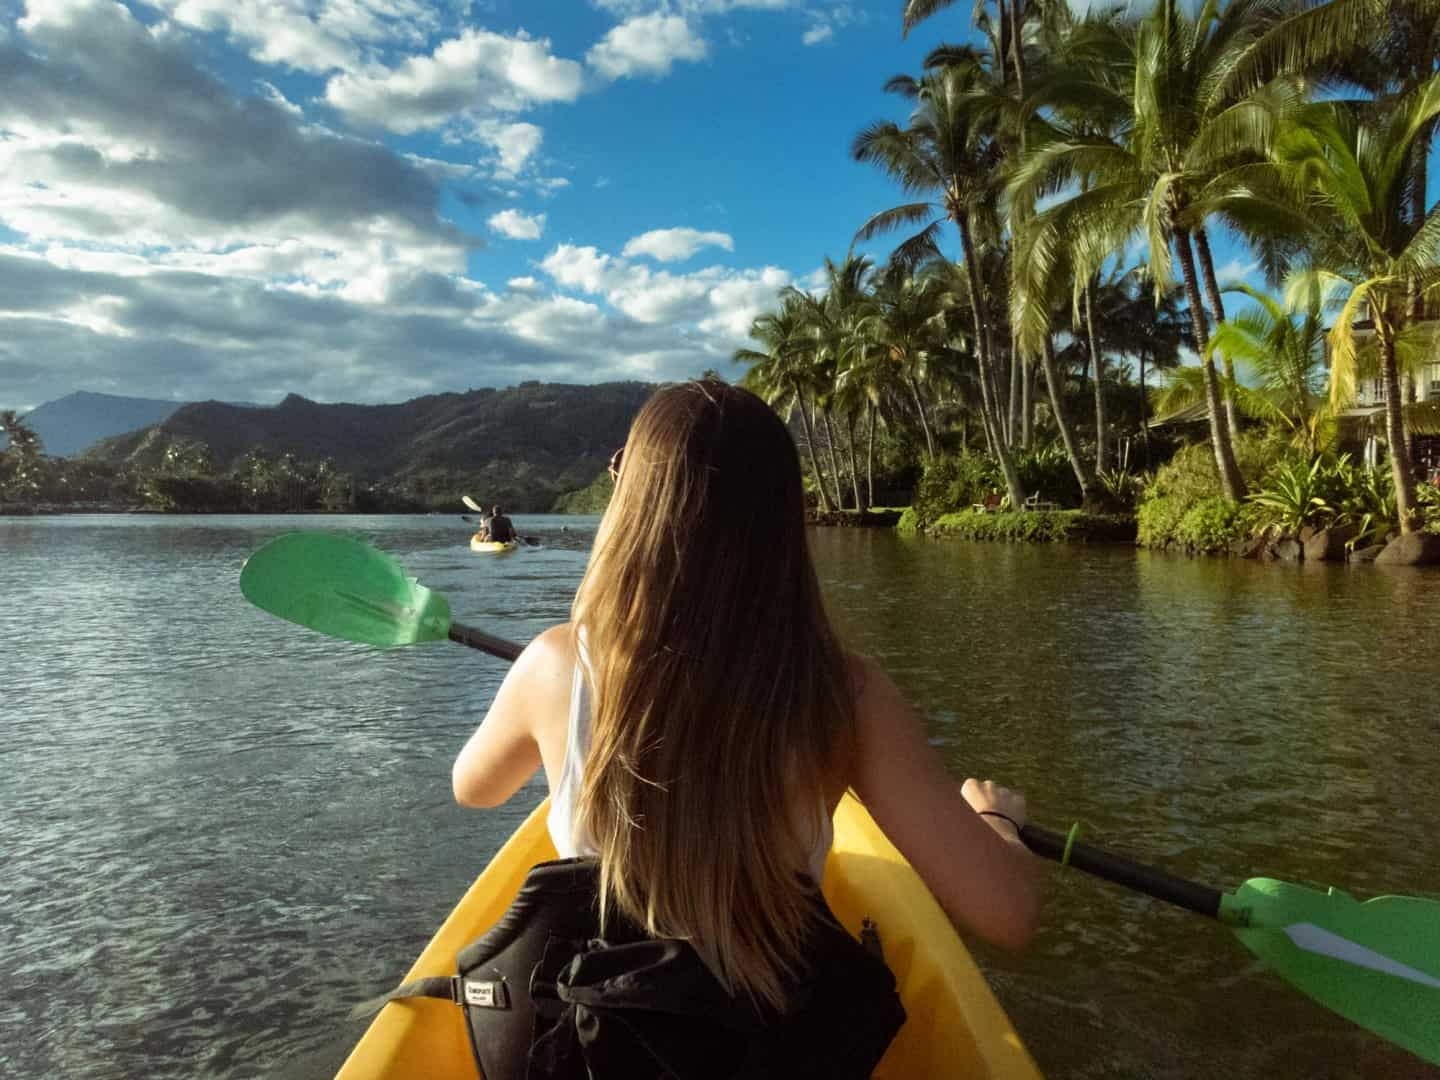 Paddling up the Wailua River in the late afternoon.